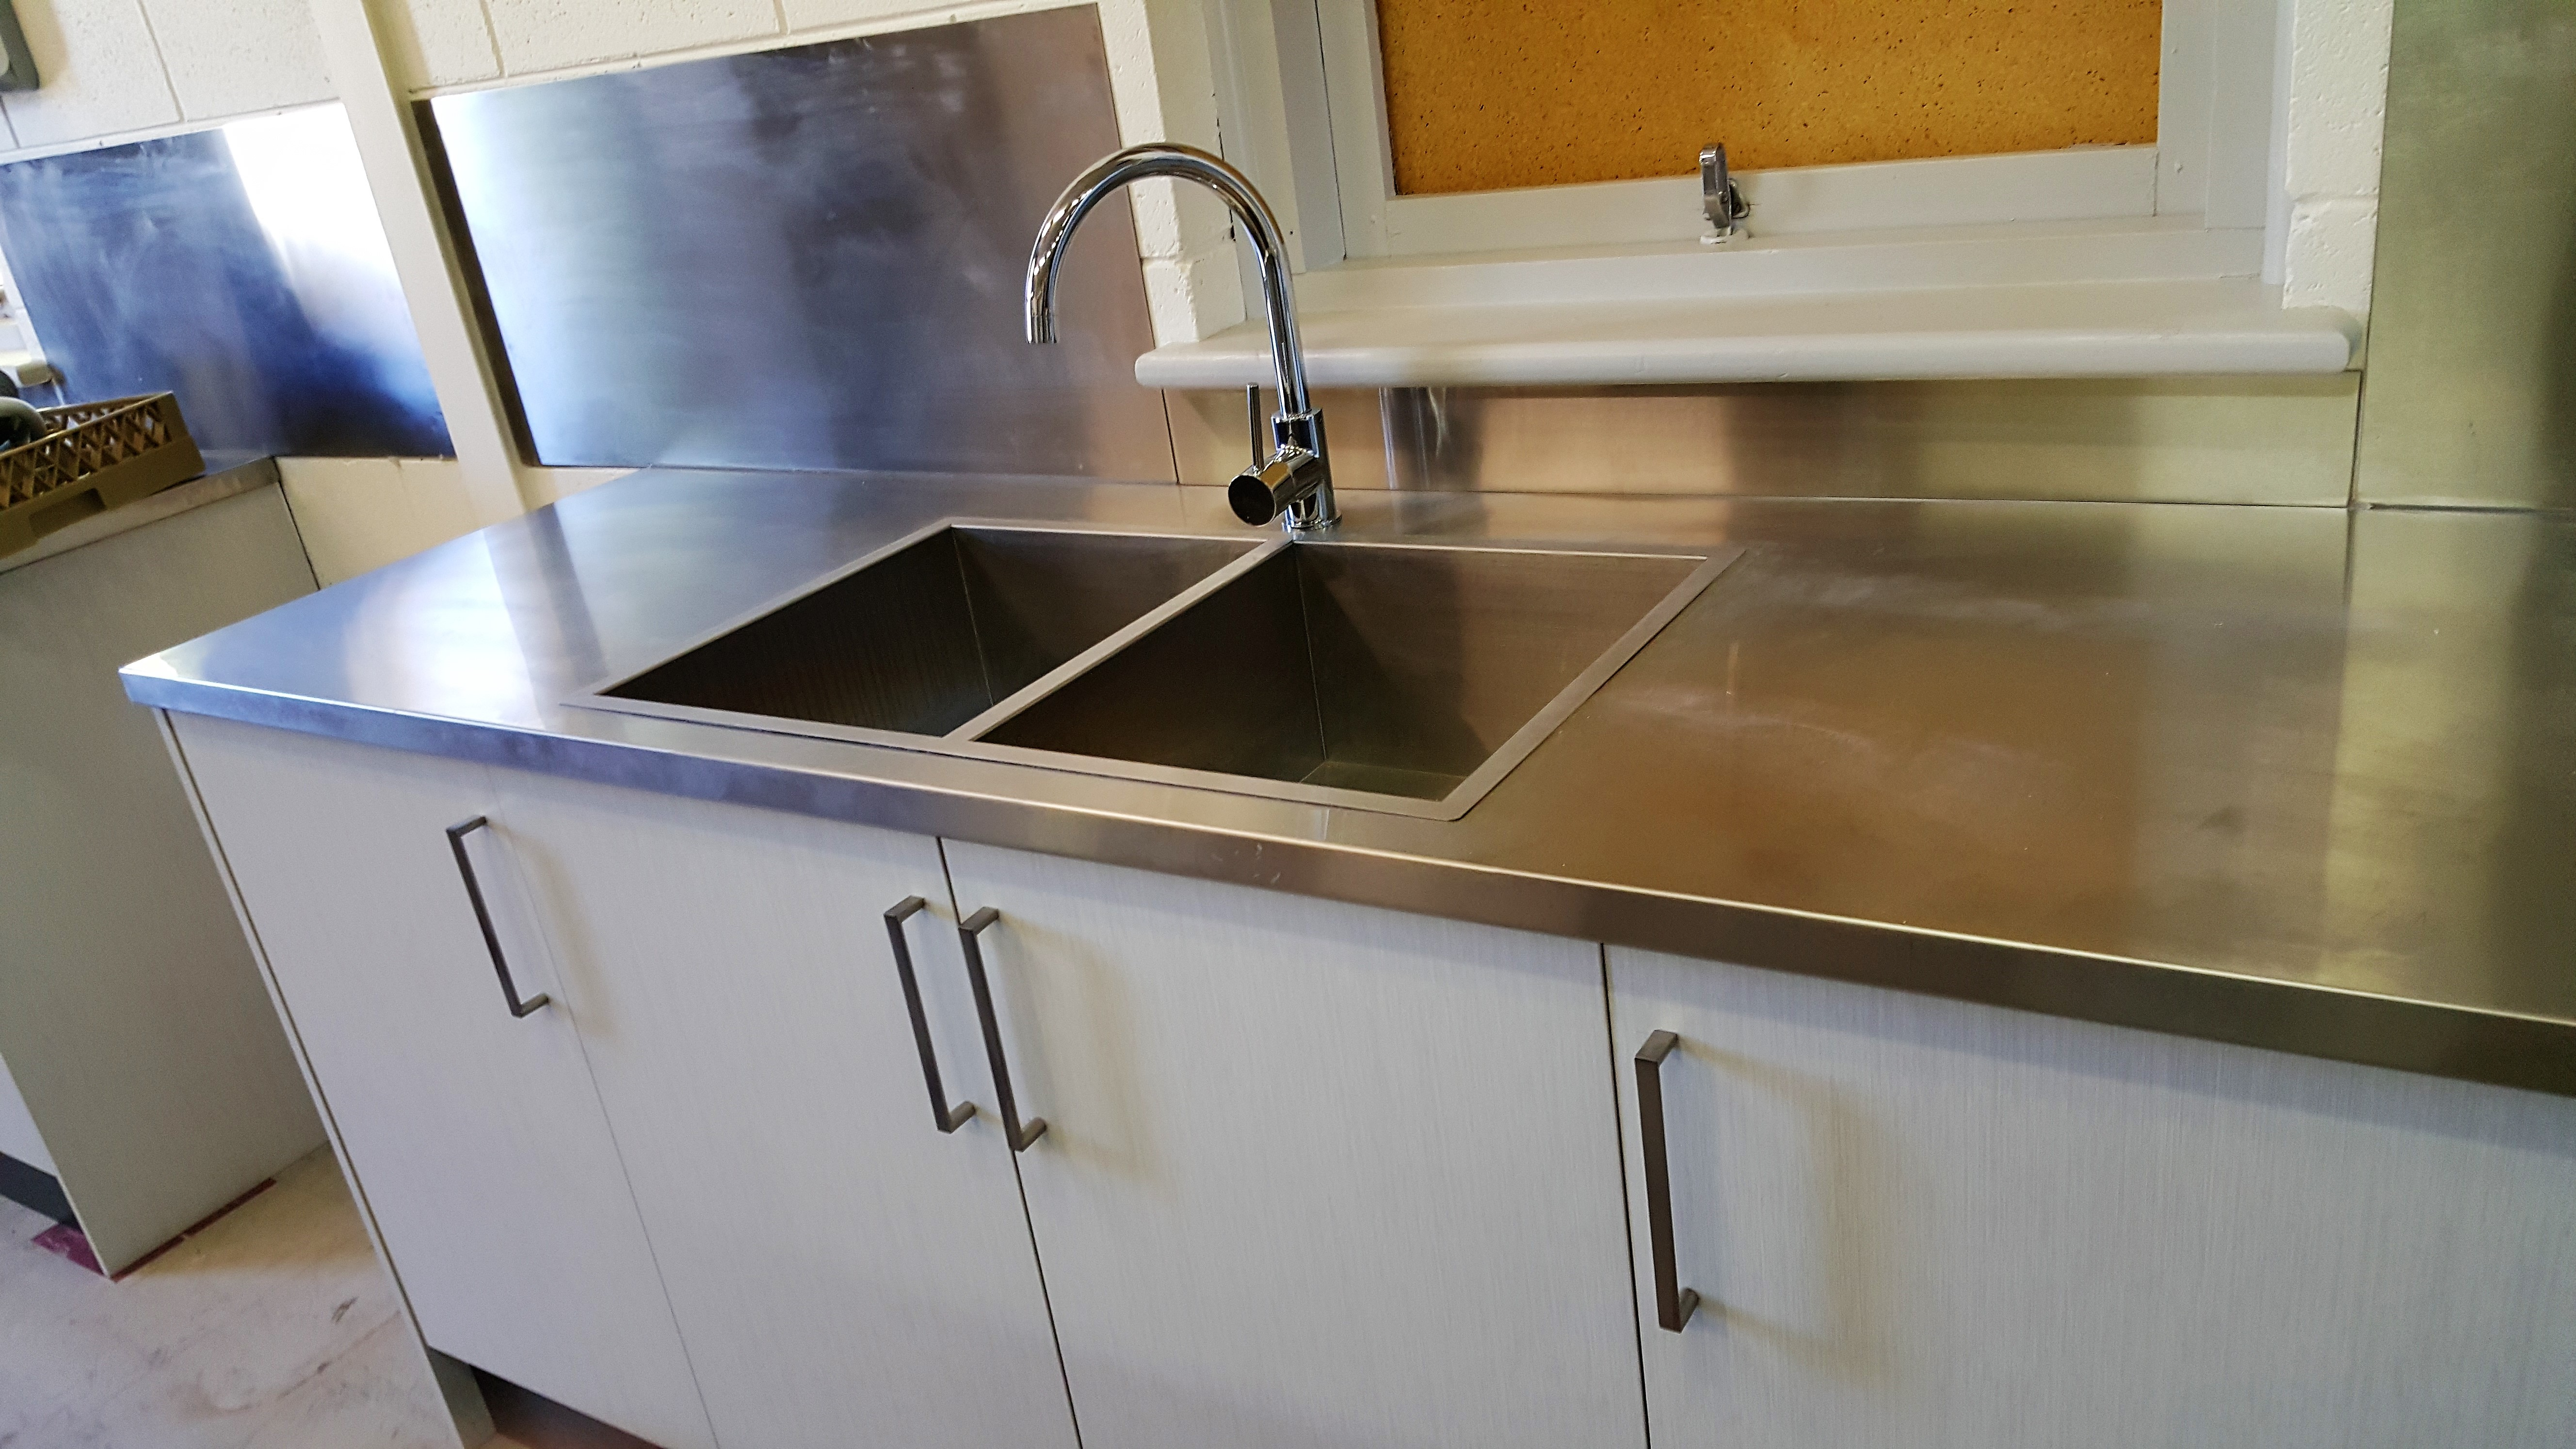 SALVATION ARMY MERCIAL KITCHEN THE FLAT EDGED SINKS BLEND